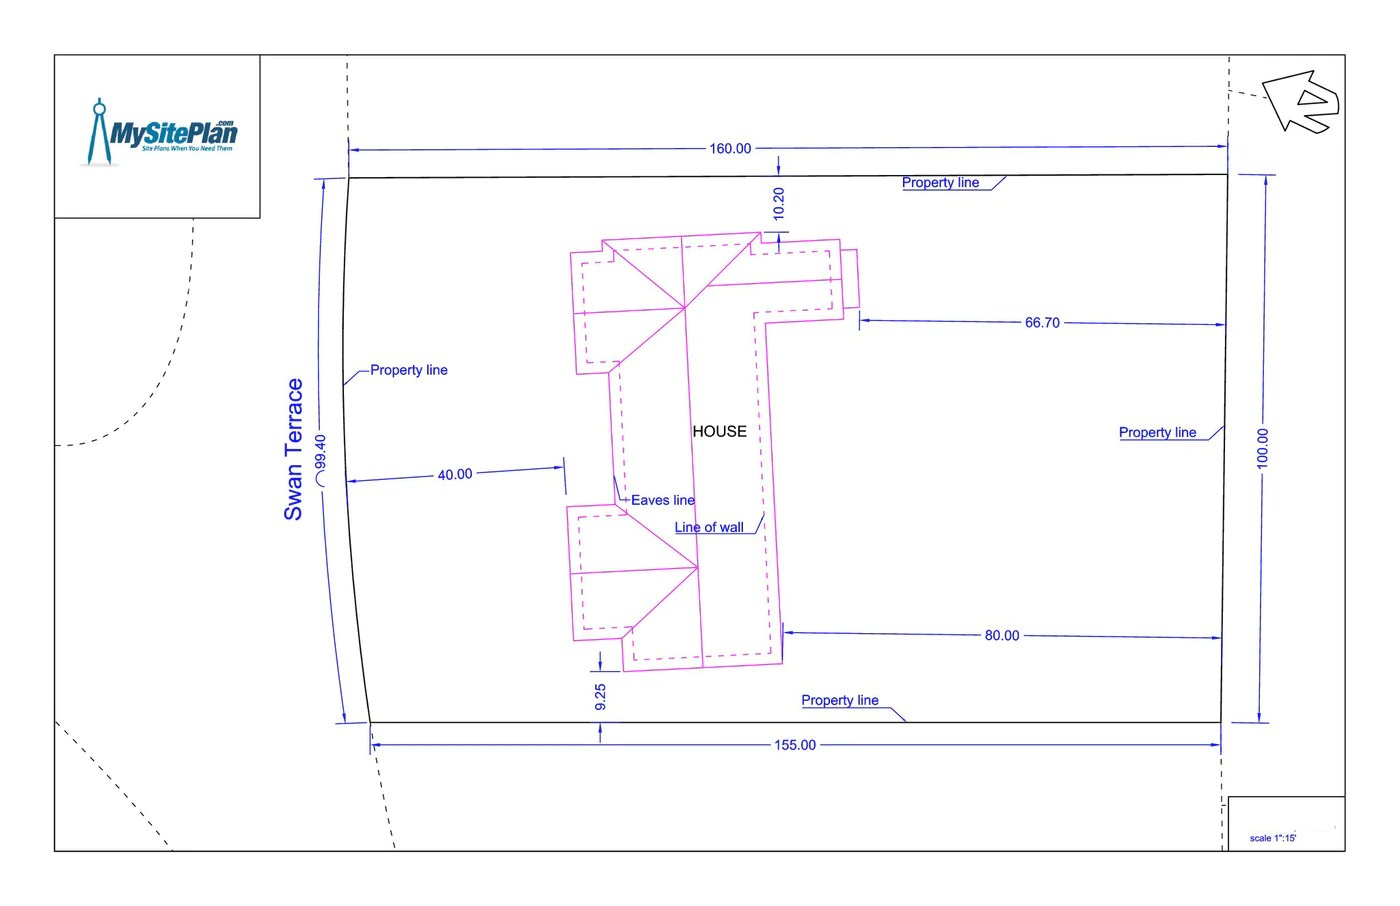 hight resolution of basic site plan